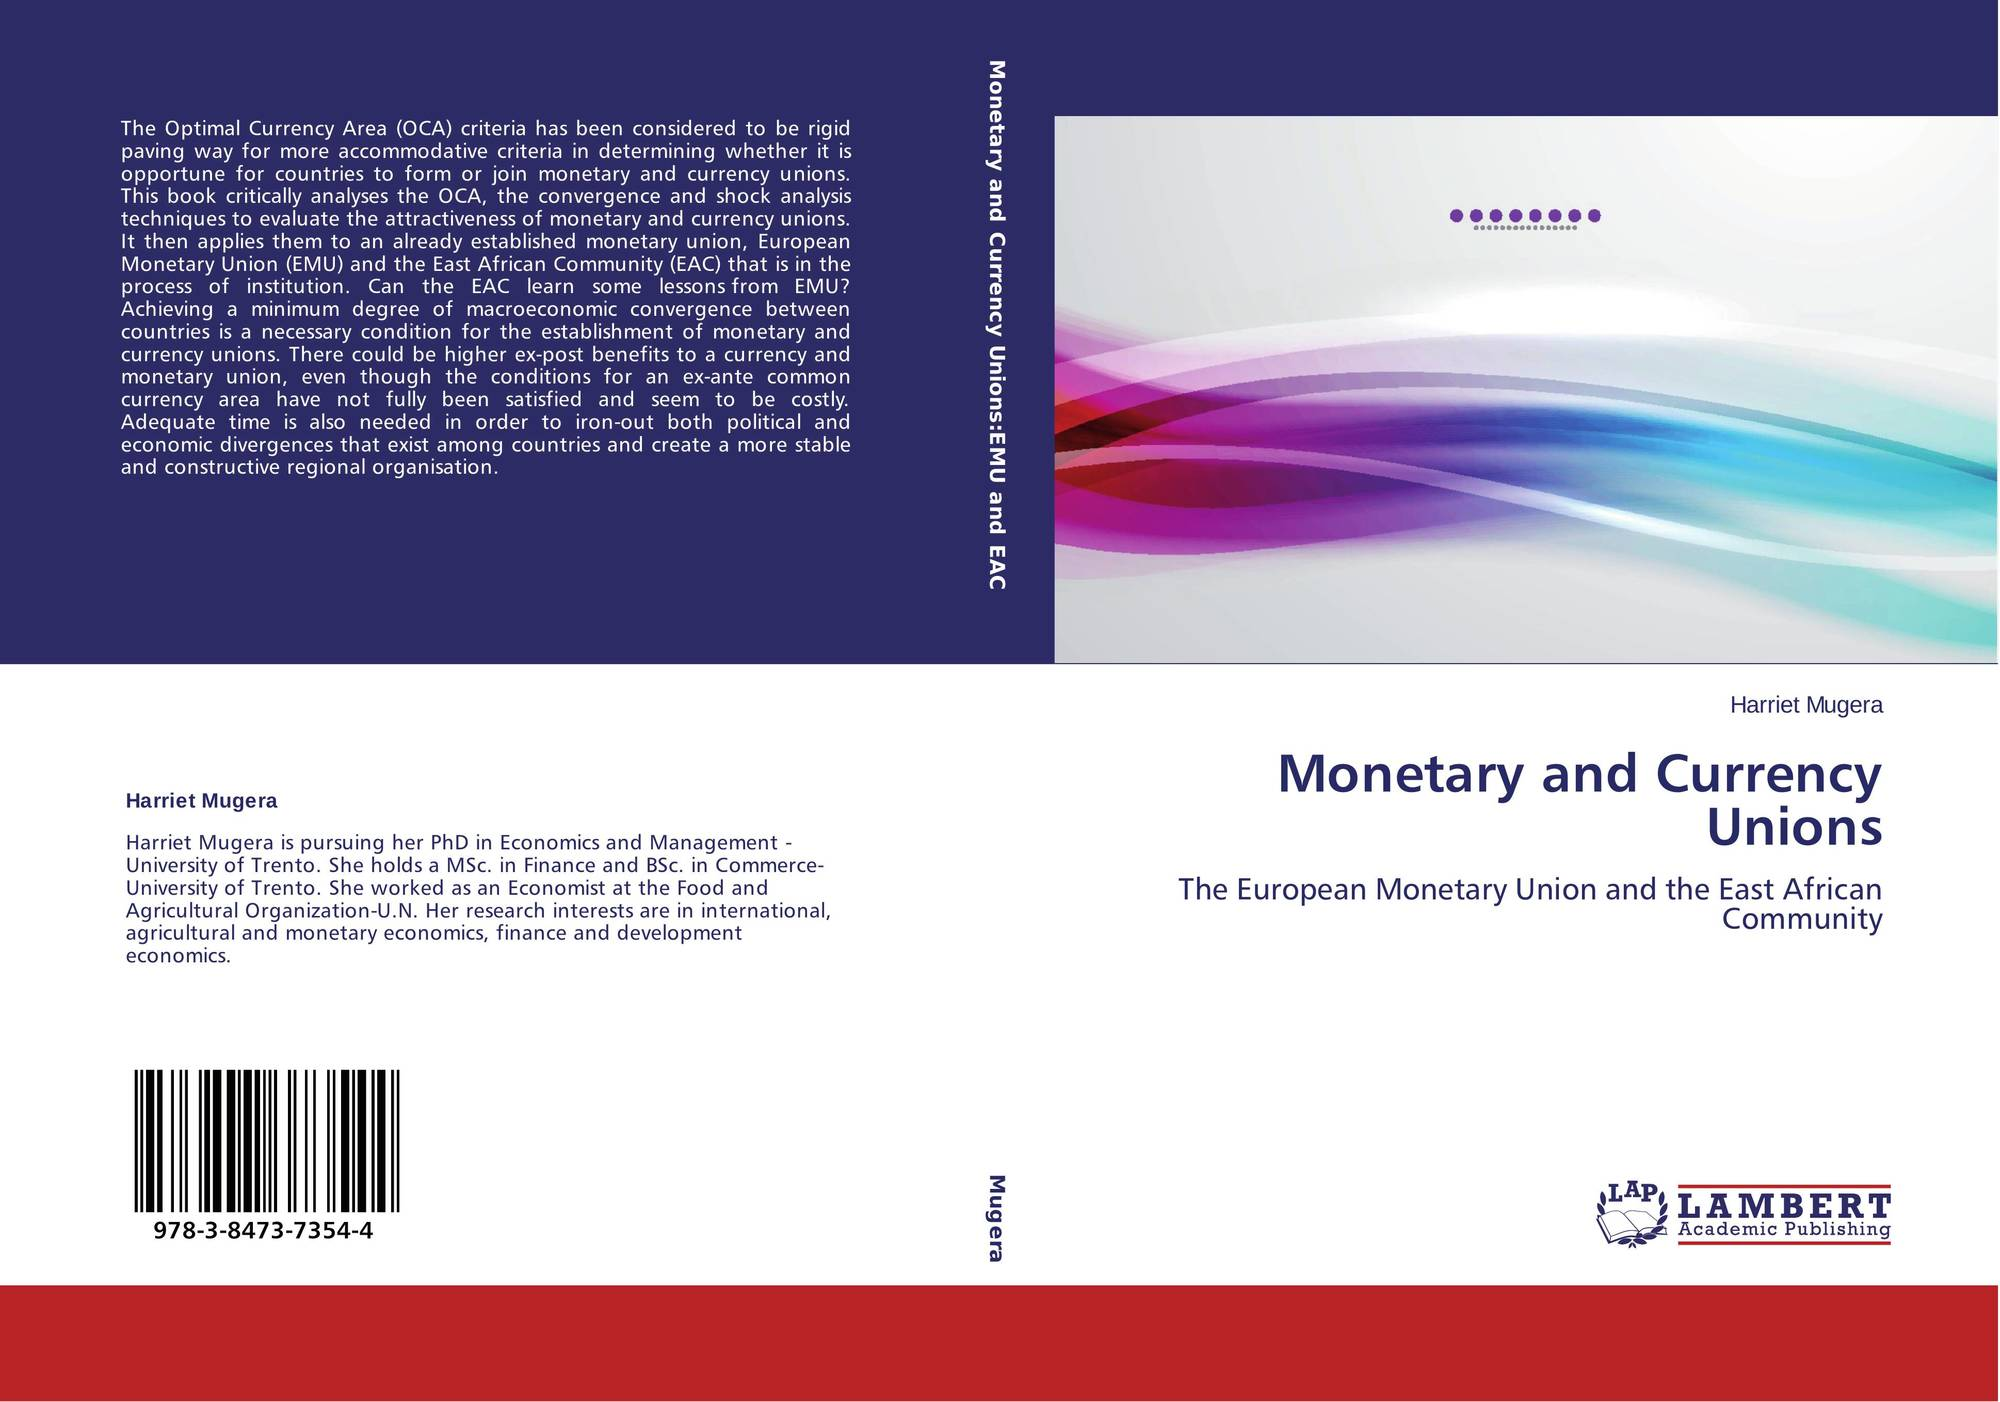 an analysis of the monetary policy of the european union By a sovereign state, but by a union of states monetary policy is inherently indivisible in a monetary union, and for the euro area, it is conducted at european level in contrast, fiscal policies and other macroeconomic policies continue to be largely the responsibility of national governments and reflect national political preferences.